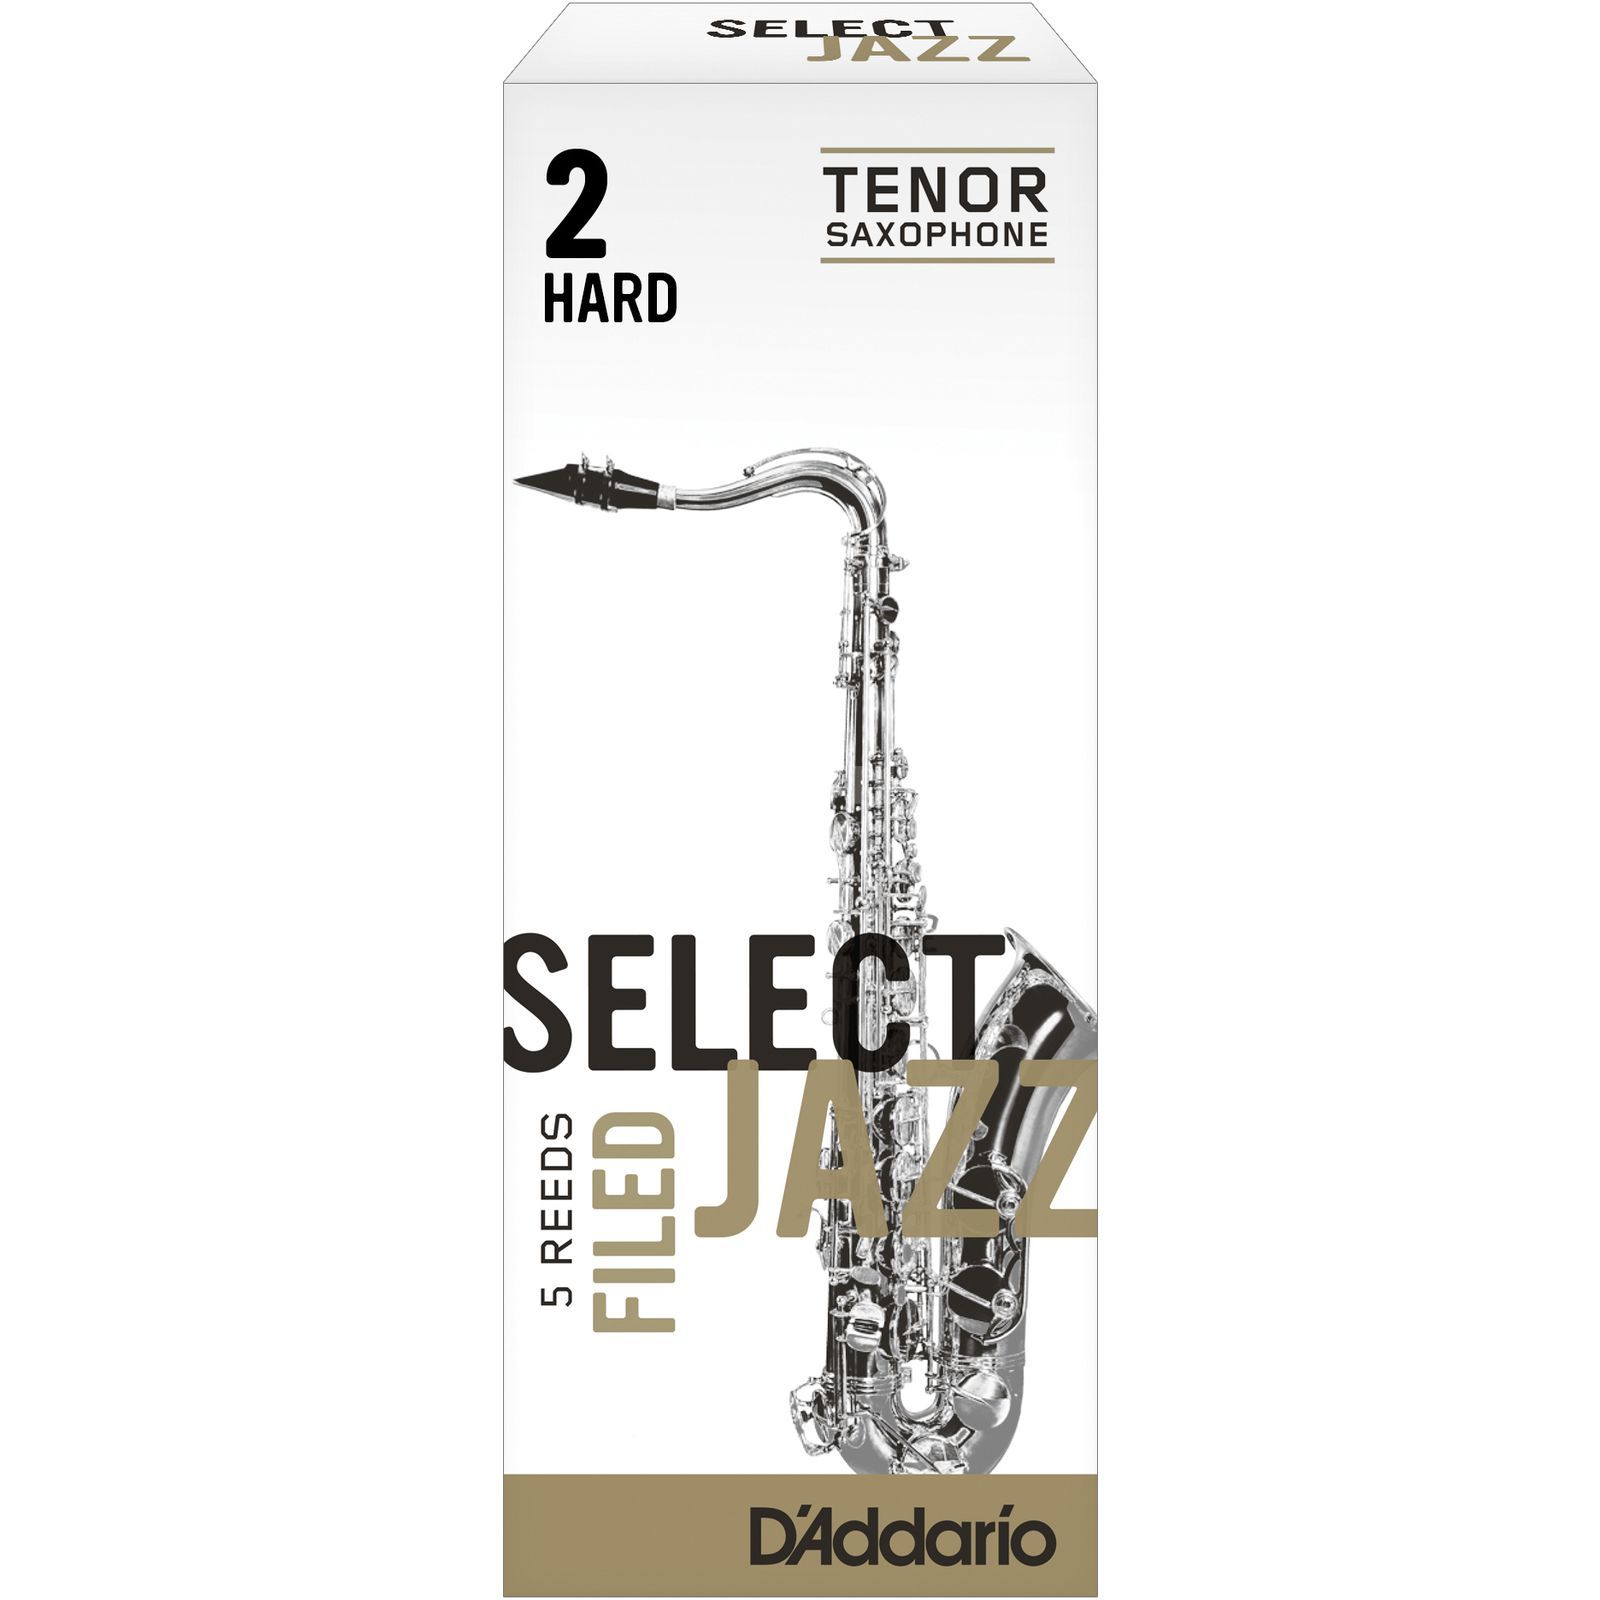 D'Addario Woodwinds Tenor Sax Reeds 2H Box of 5 Εικόνα προιόντος